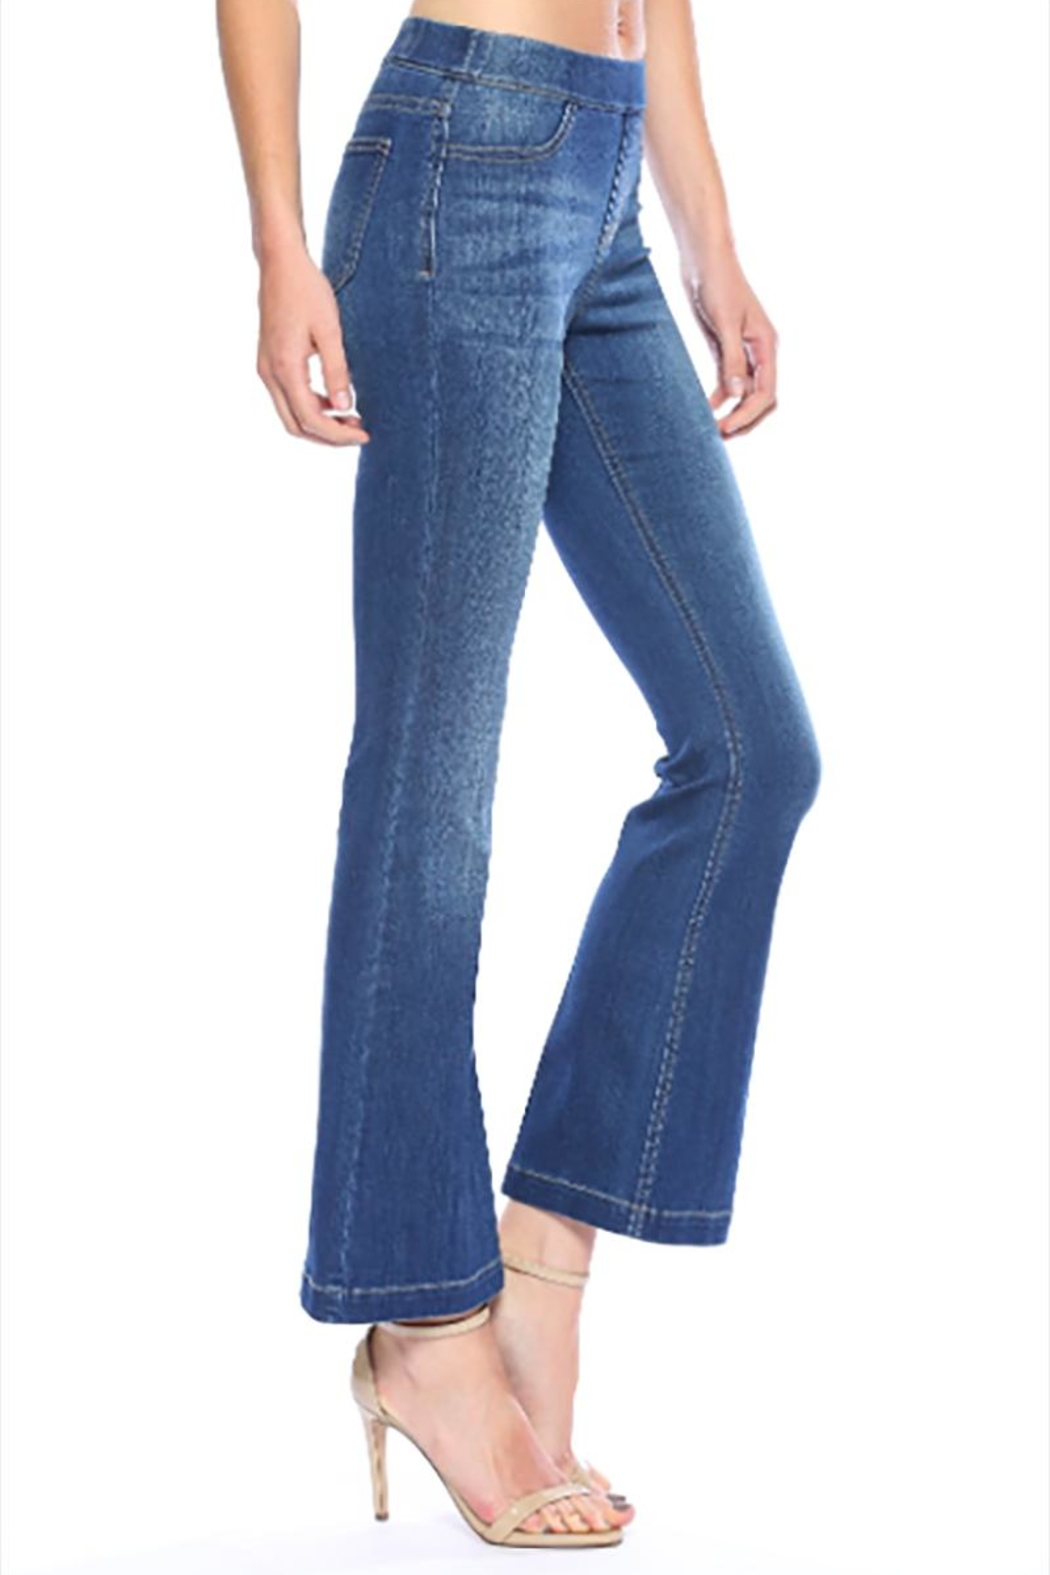 Cello Jeans Petite Dark Pullons - Front Full Image